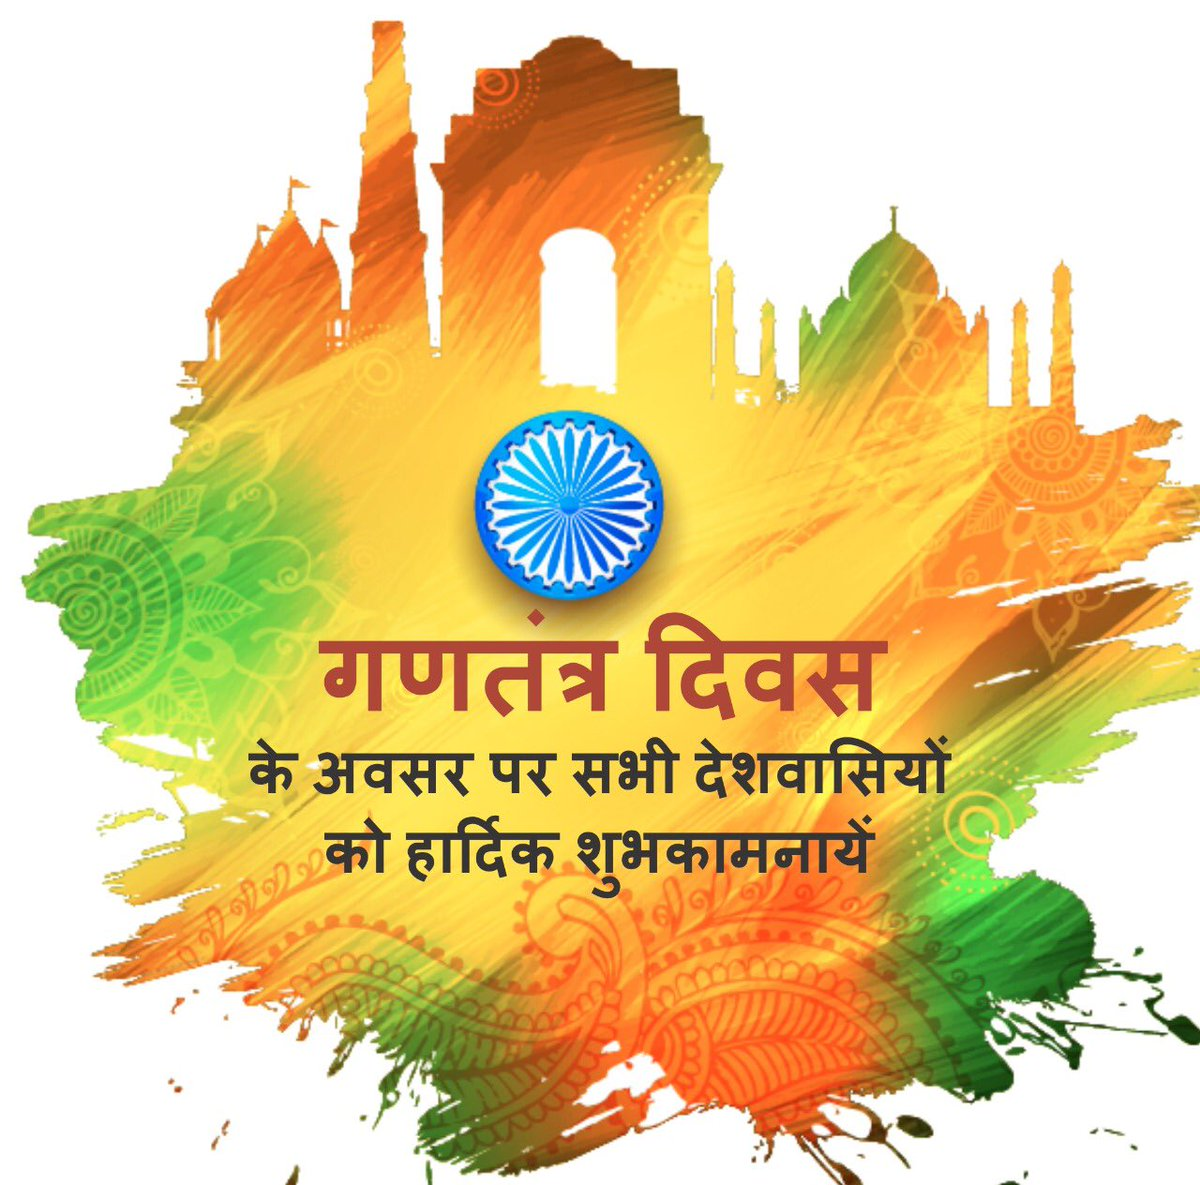 Satyam yadav on twitter republicday greetings to indians across republicday greetings to indians across the world on this day let us take pride in the achievements of our nation and reaffirm our commitment to kristyandbryce Gallery